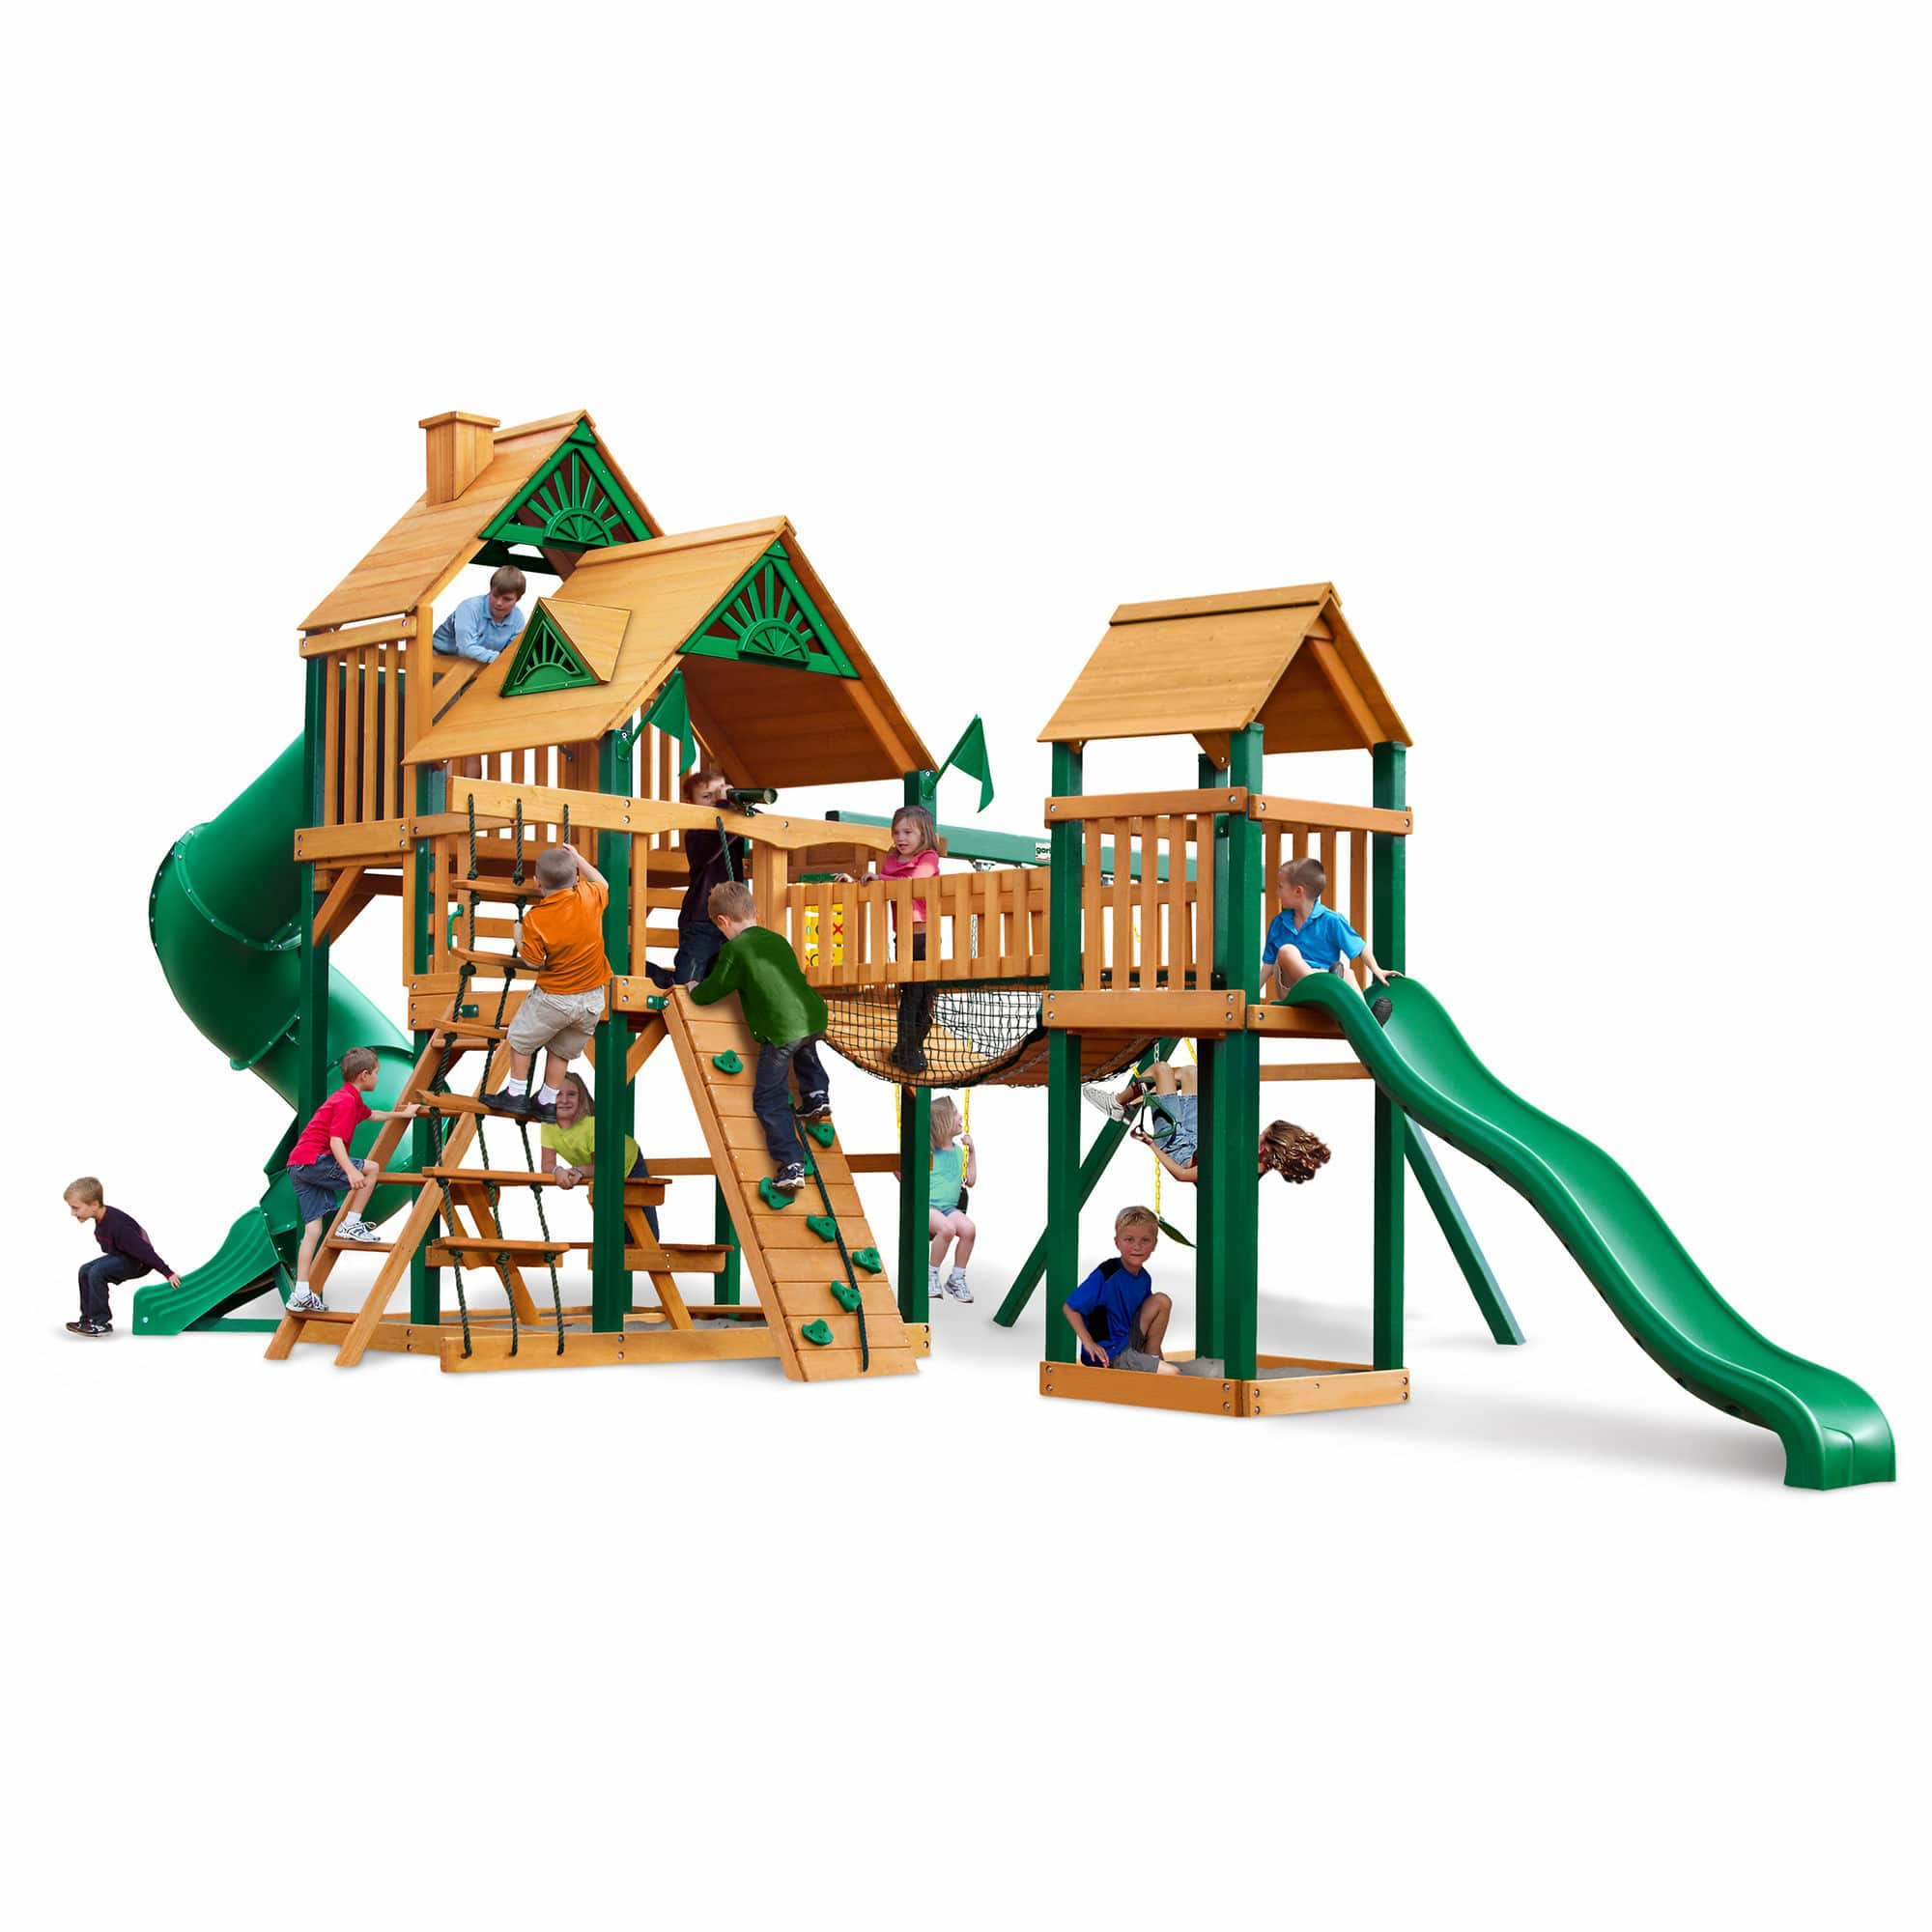 Swing Sets On Sale At Bjs Com Up To 1000 Off Treasure Trove 2400